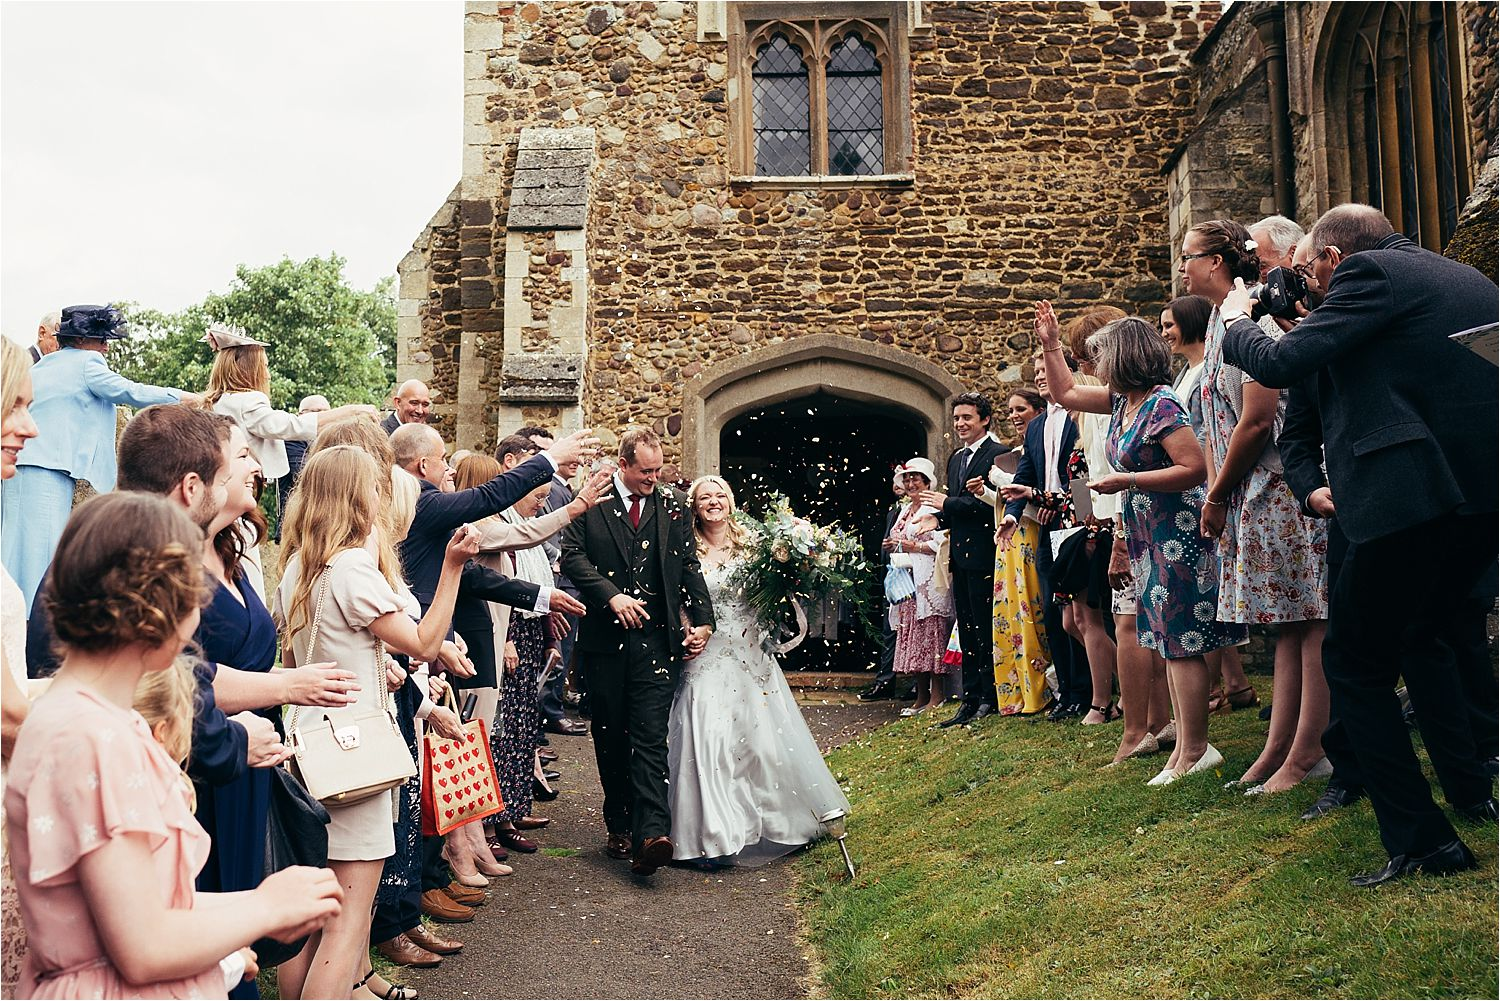 Bride and groom walking through confetti shower at Bedfordshire church wedding